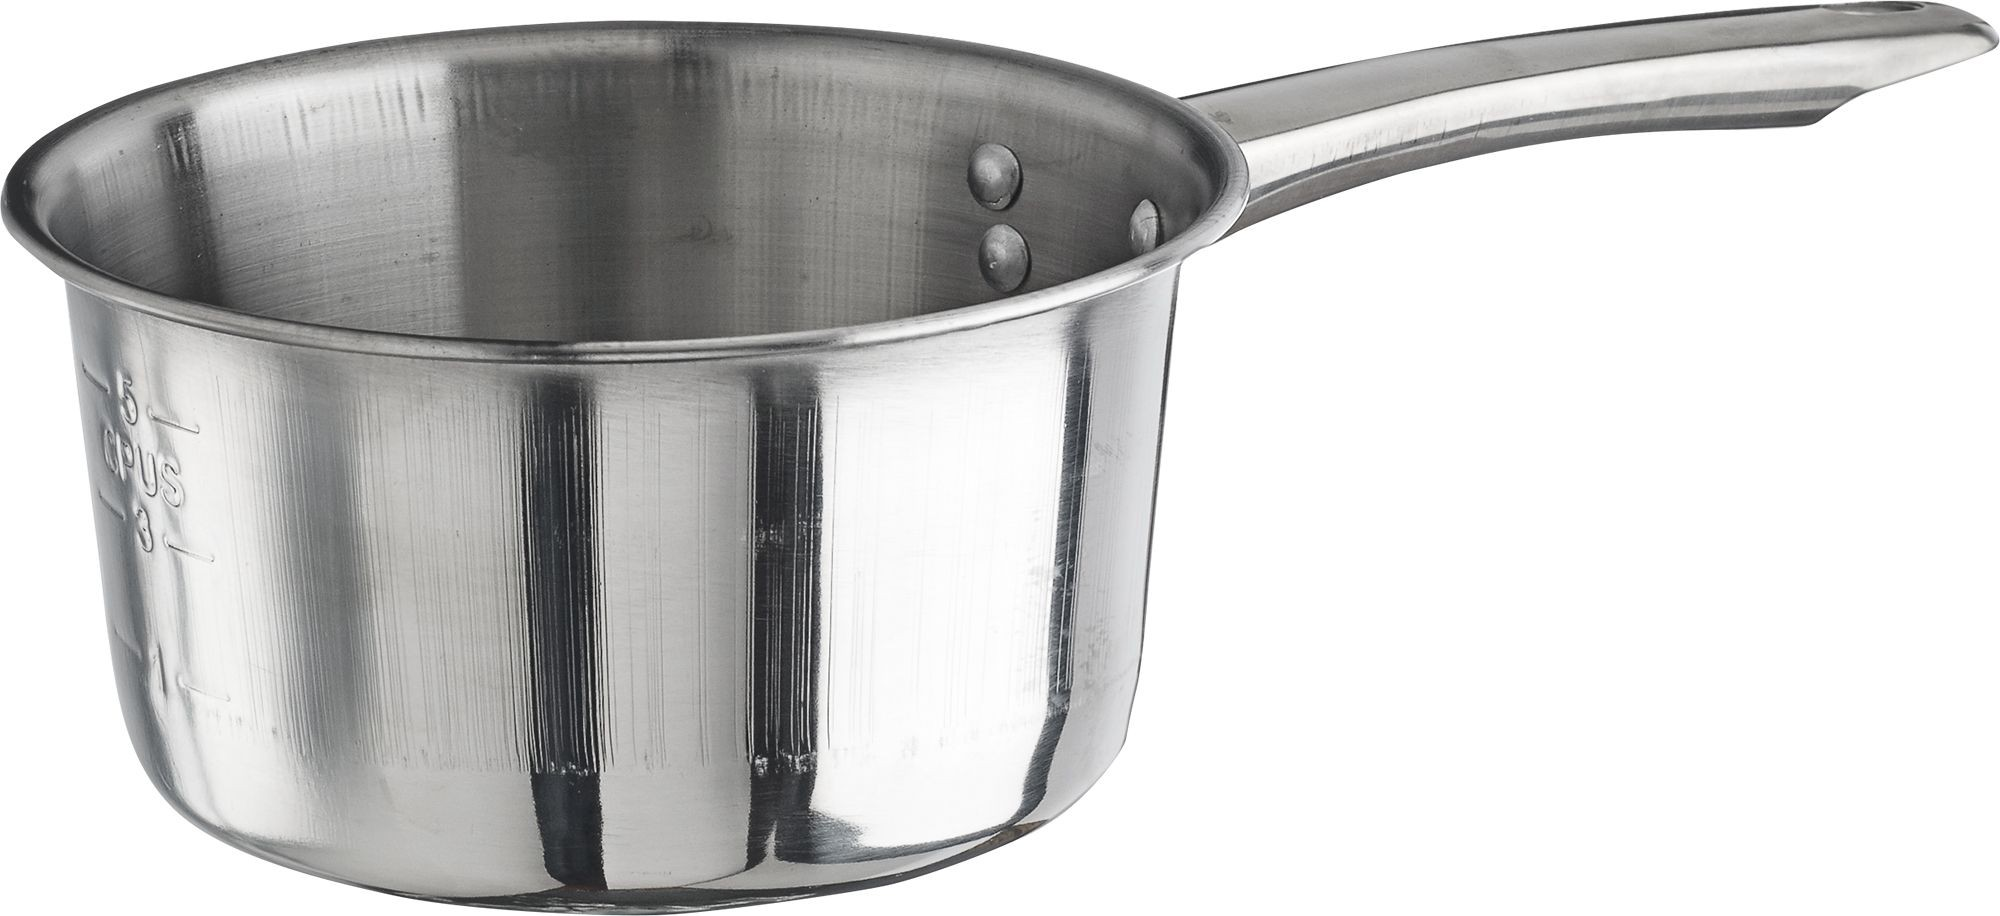 Winco SAP-2 Stainless Steel 2 Qt Sauce Pan